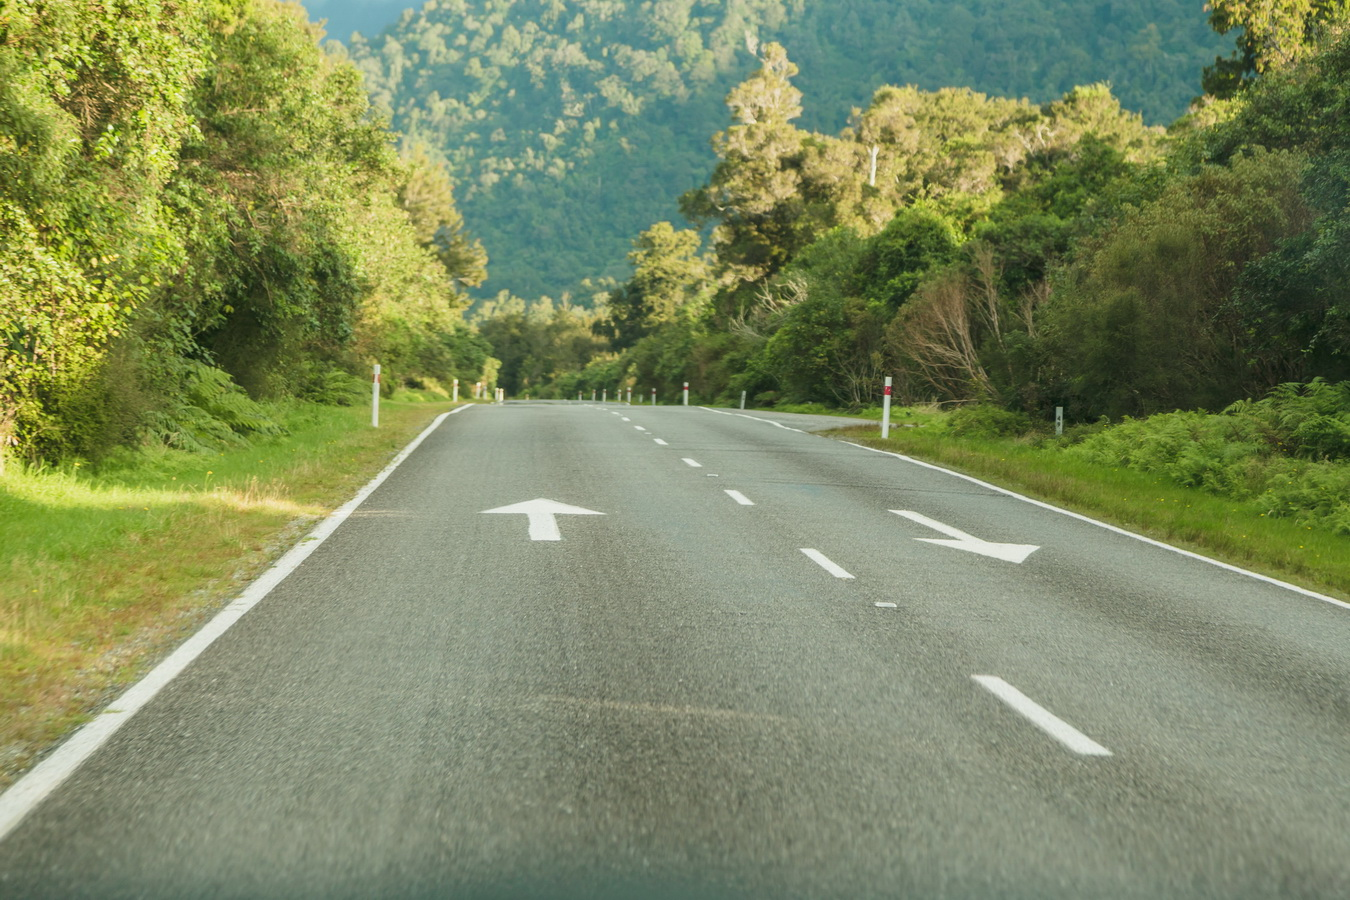 marks on a road,keep left, road, car,road sign, new Zealand